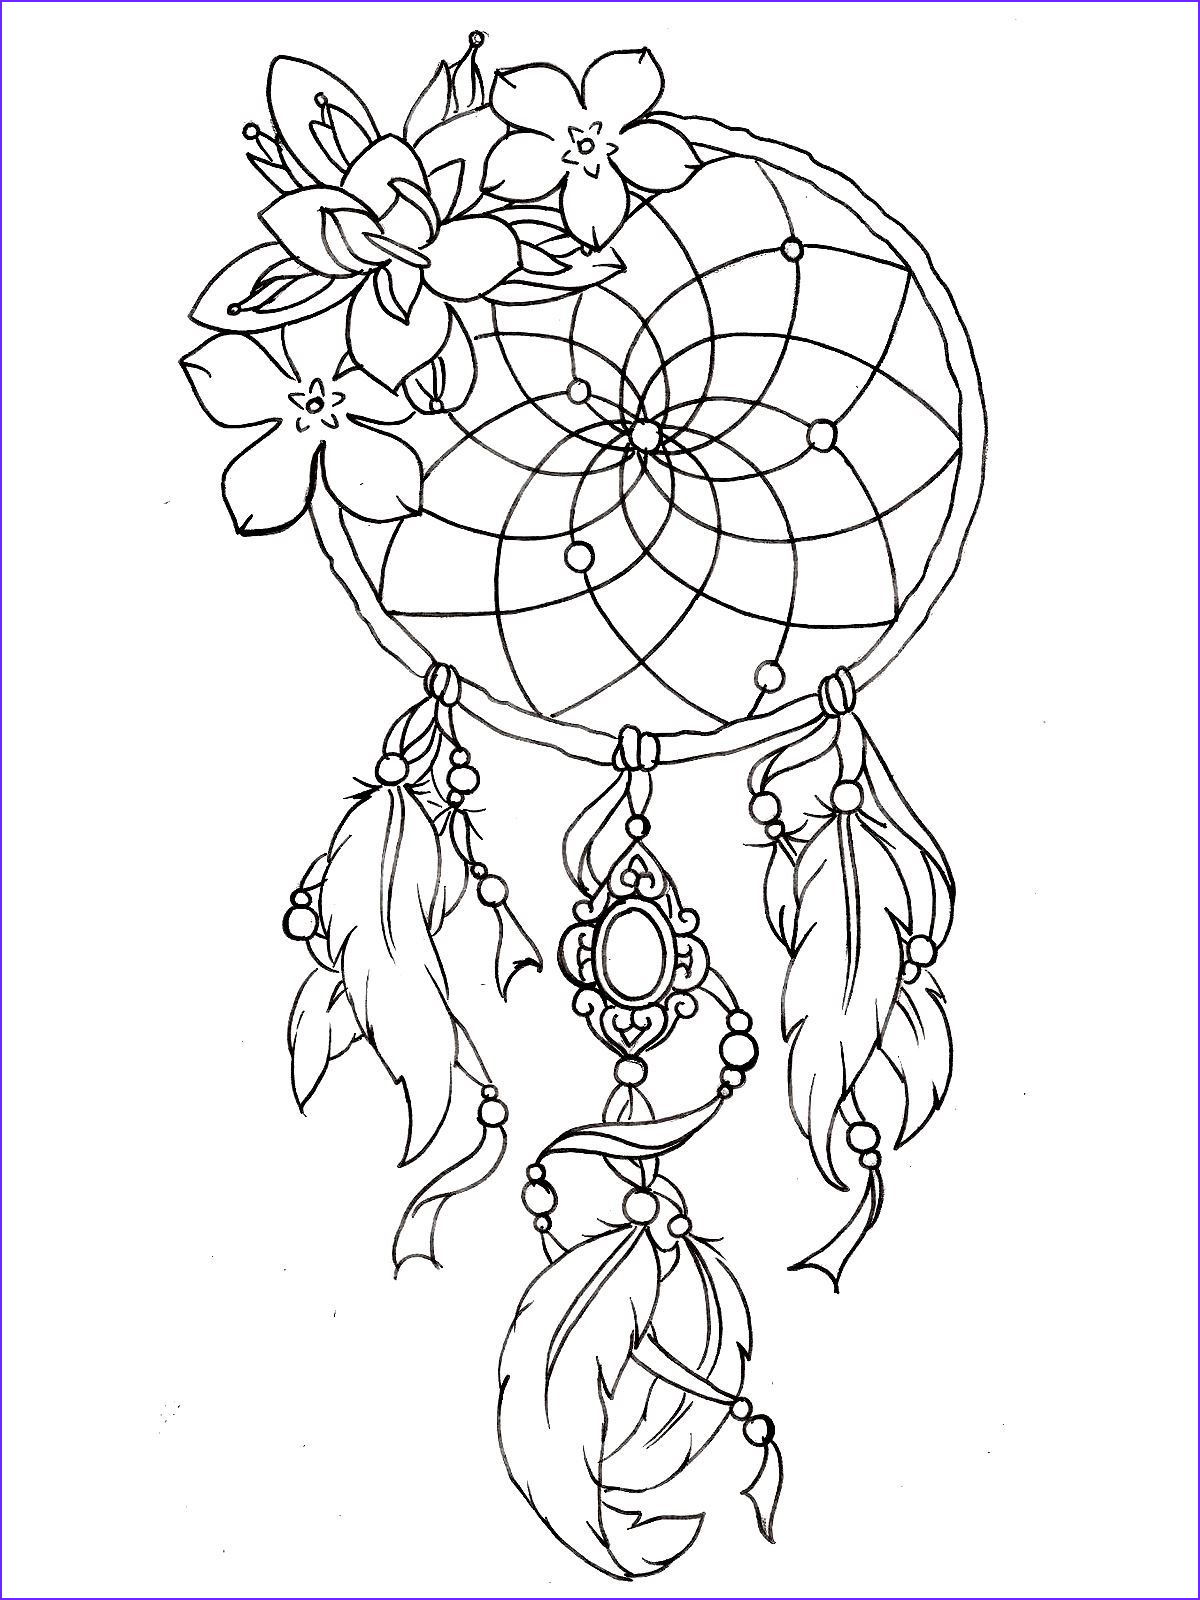 Tattoo Coloring Pages Inspirational Photos Free Coloring Page Coloring Dreamcatcher Tattoo Designs